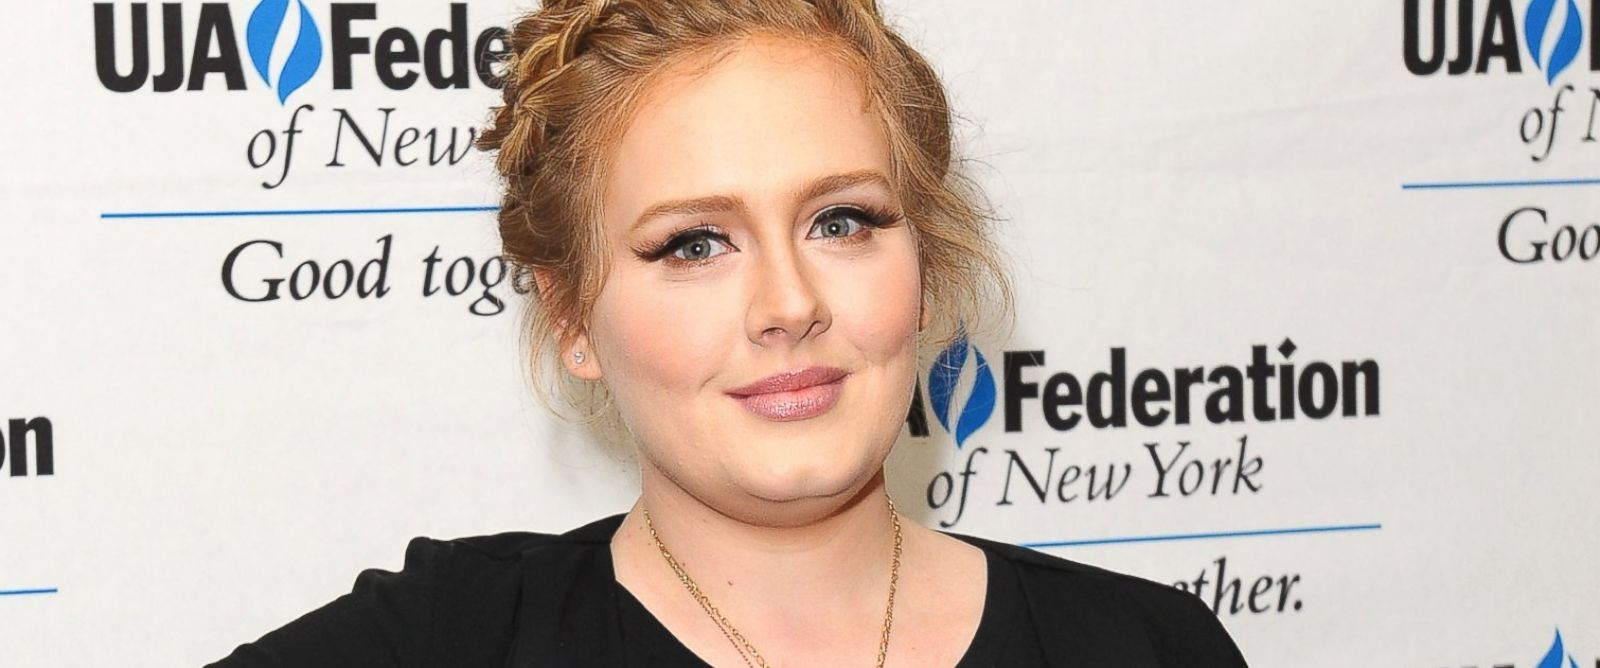 PHOTO: Adele attends the UJA-Federation Of New York Music Visionary Of The Year Award Luncheon at The Pierre Hotel, June 21, 2013, in New York City.